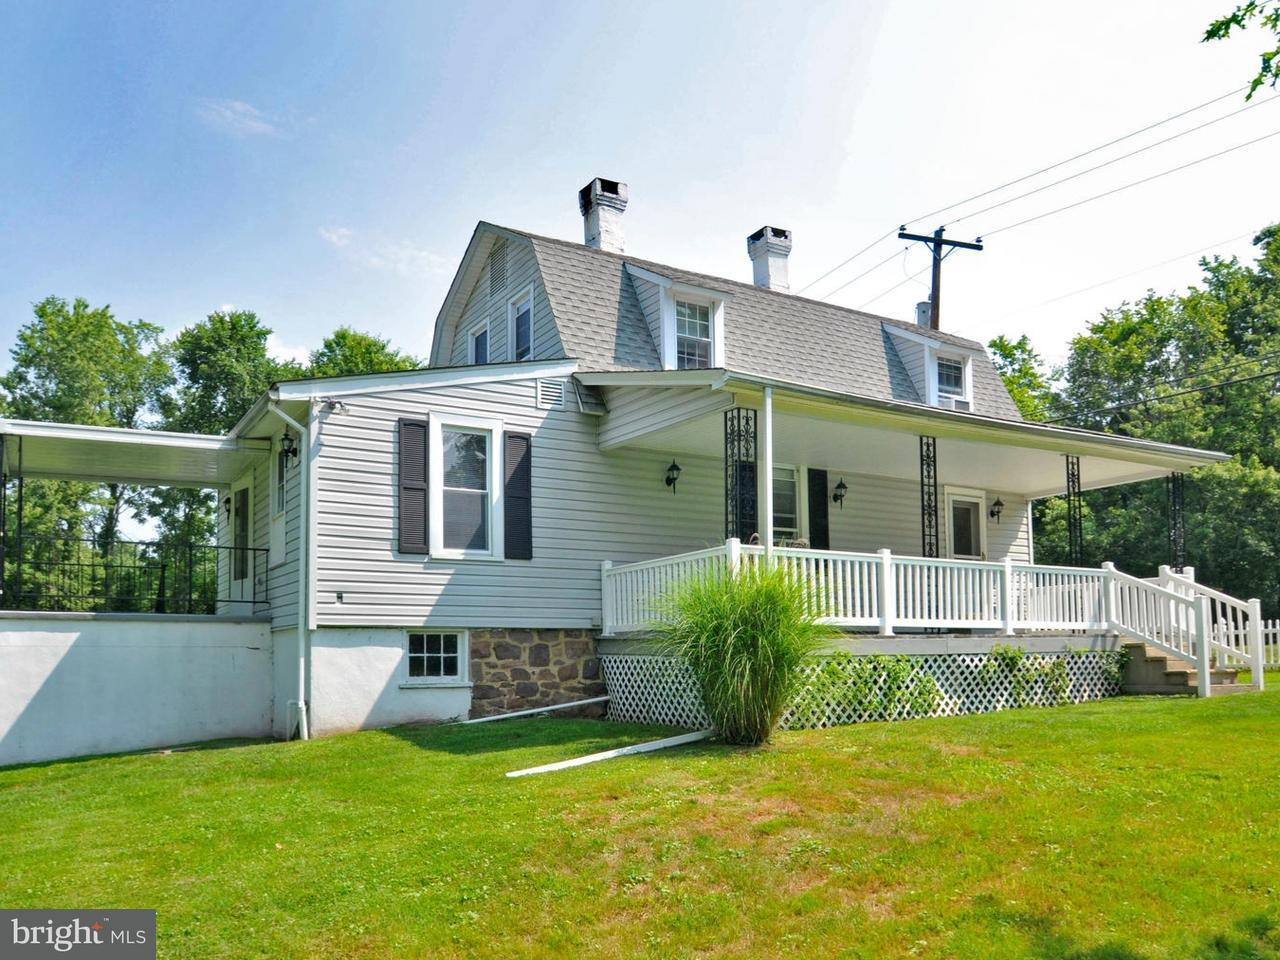 Single Family Home for Rent at 941 LIMEKILN PIKE Horsham, Pennsylvania 19002 United States